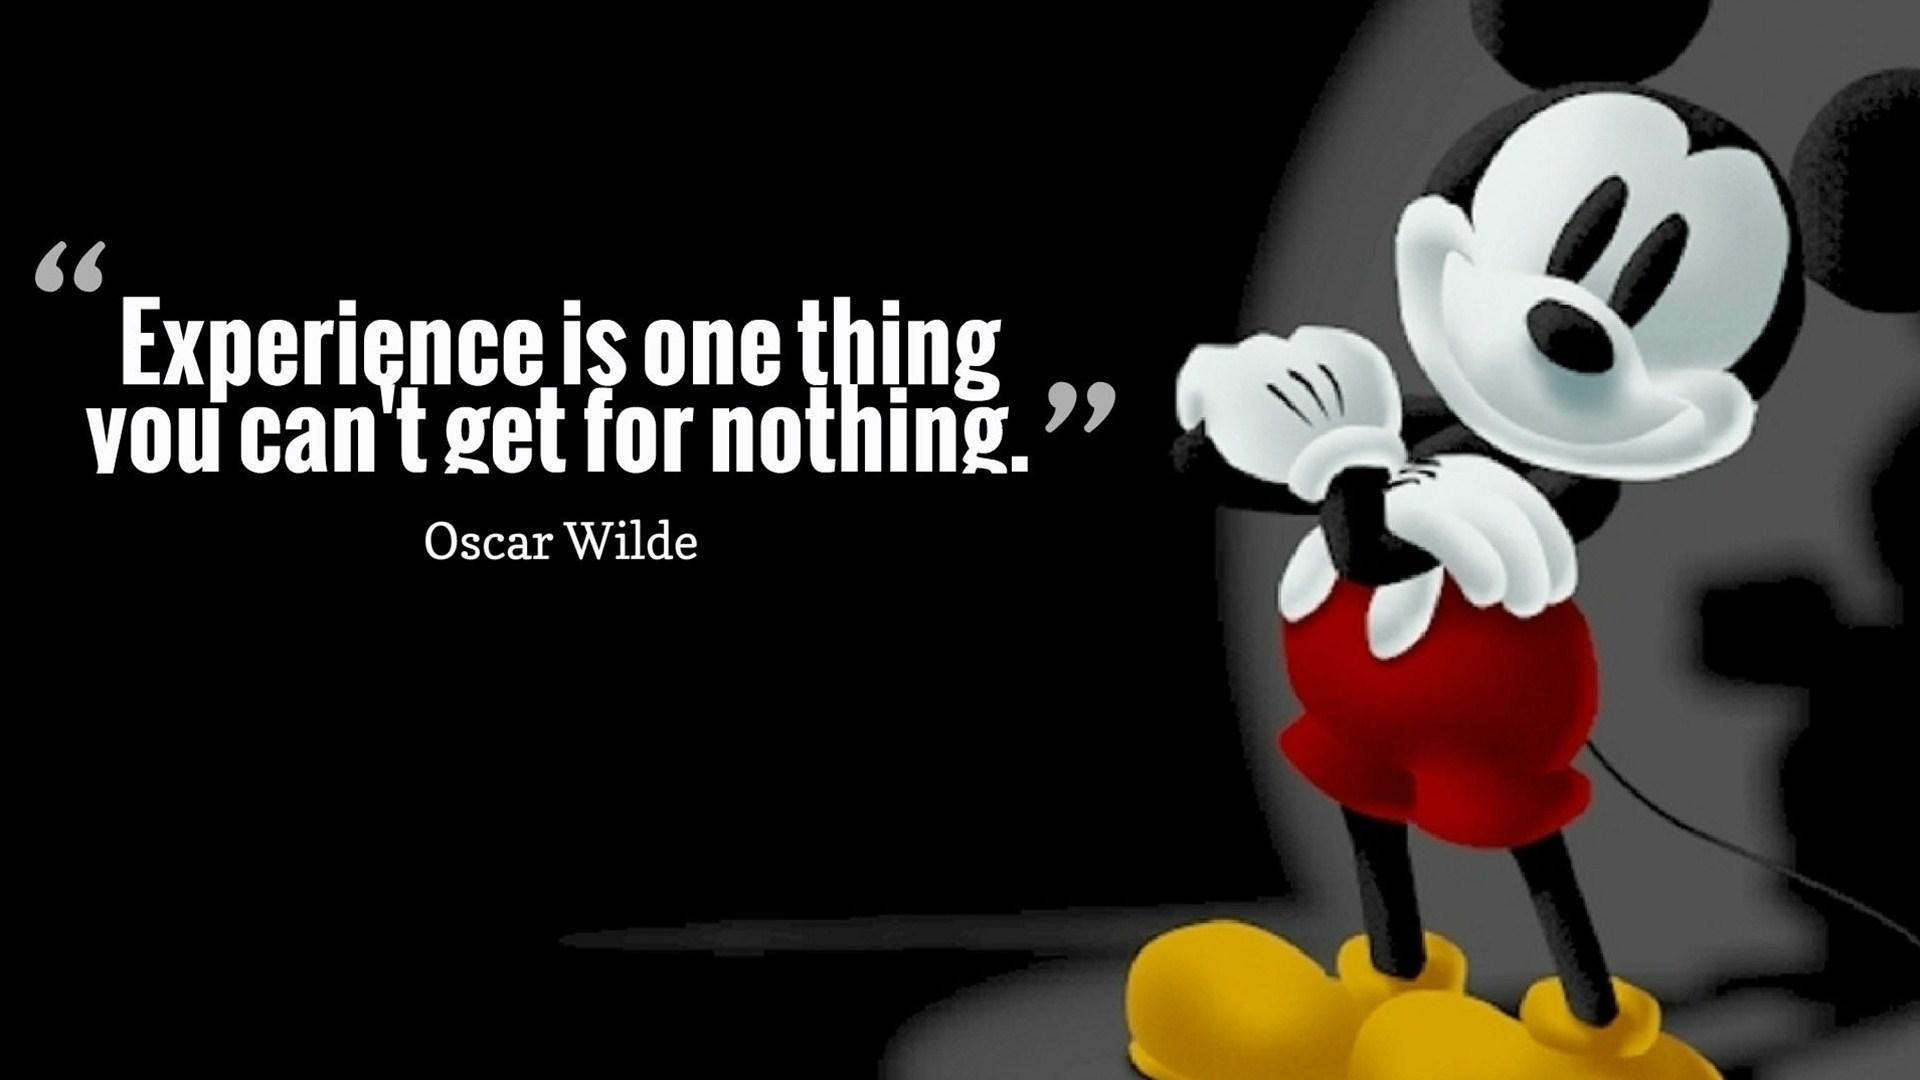 Experience Quotes experience is one thing you can't get for nothing